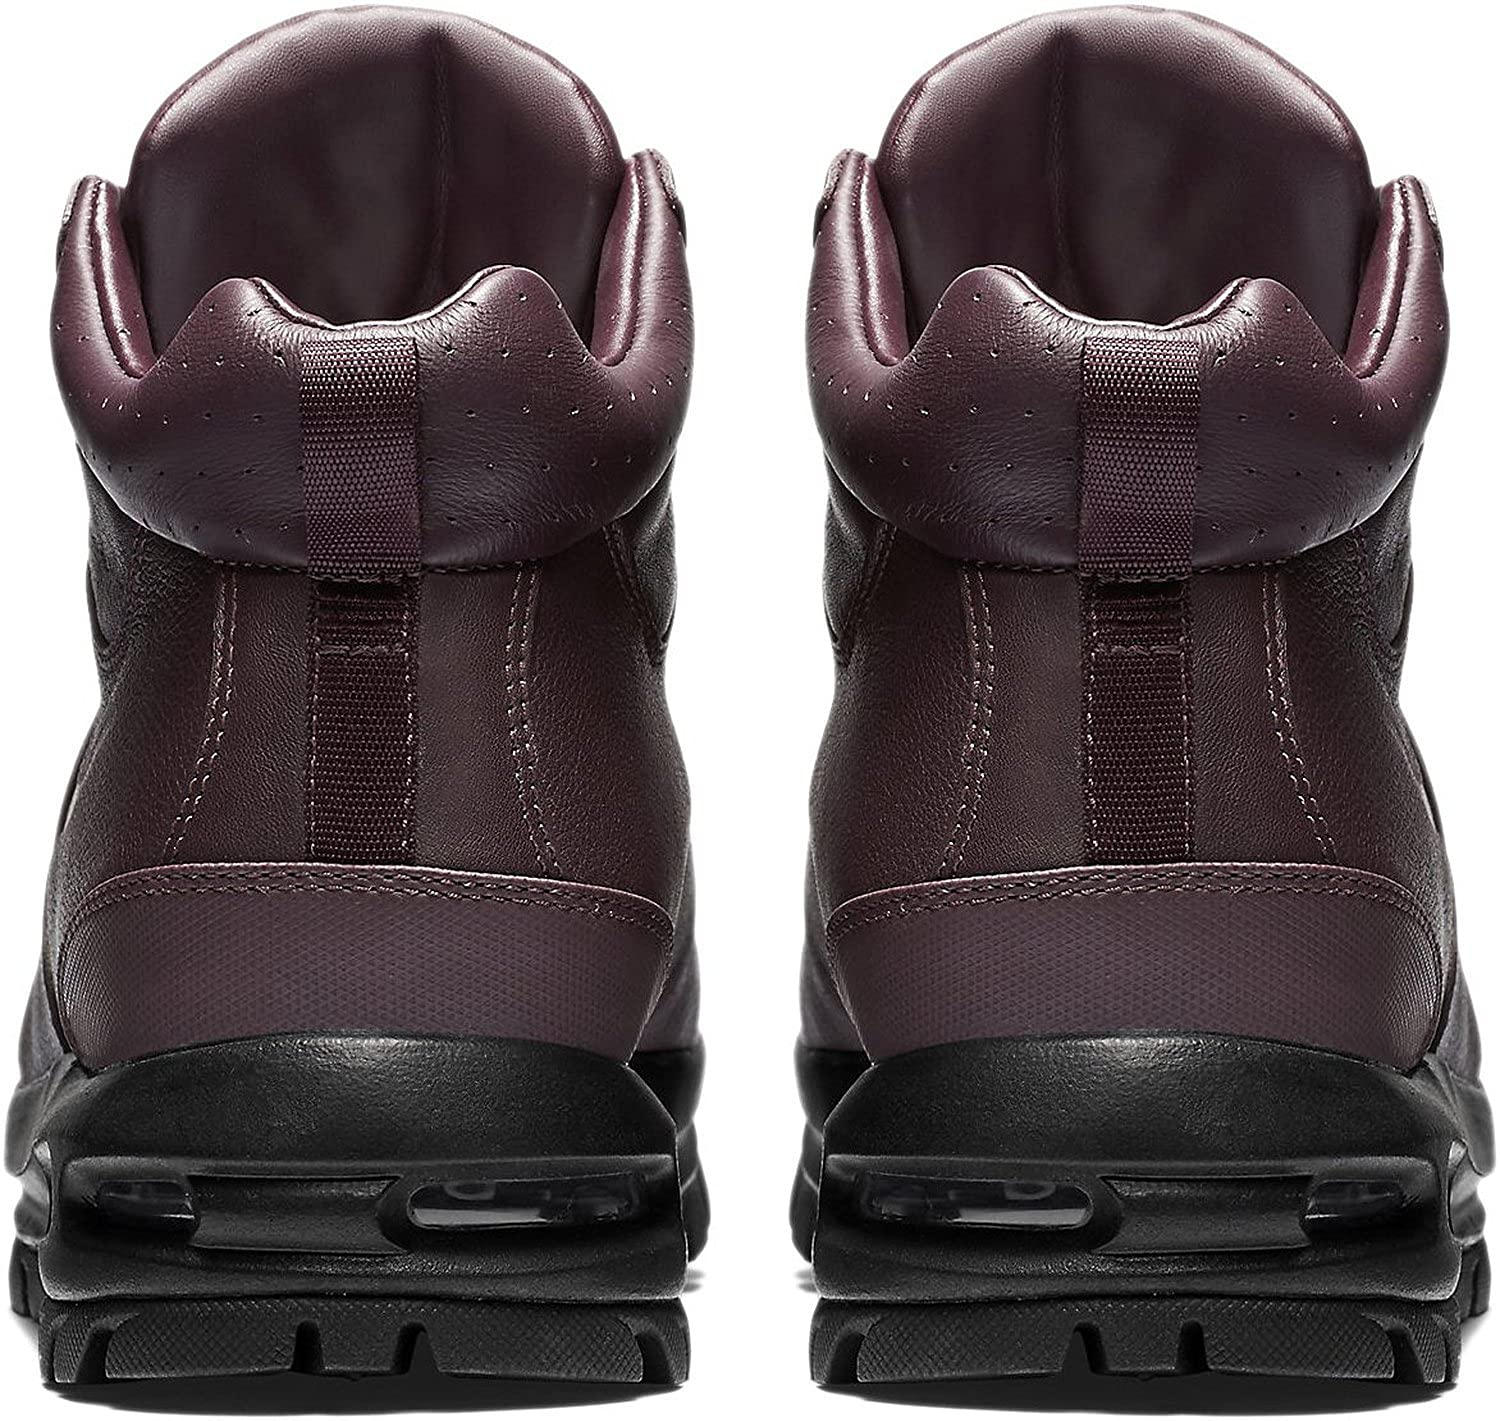 sports shoes b66a9 220ce Amazon.com   Nike Mens Air Max Goaterra ACG Boots   Hiking Boots